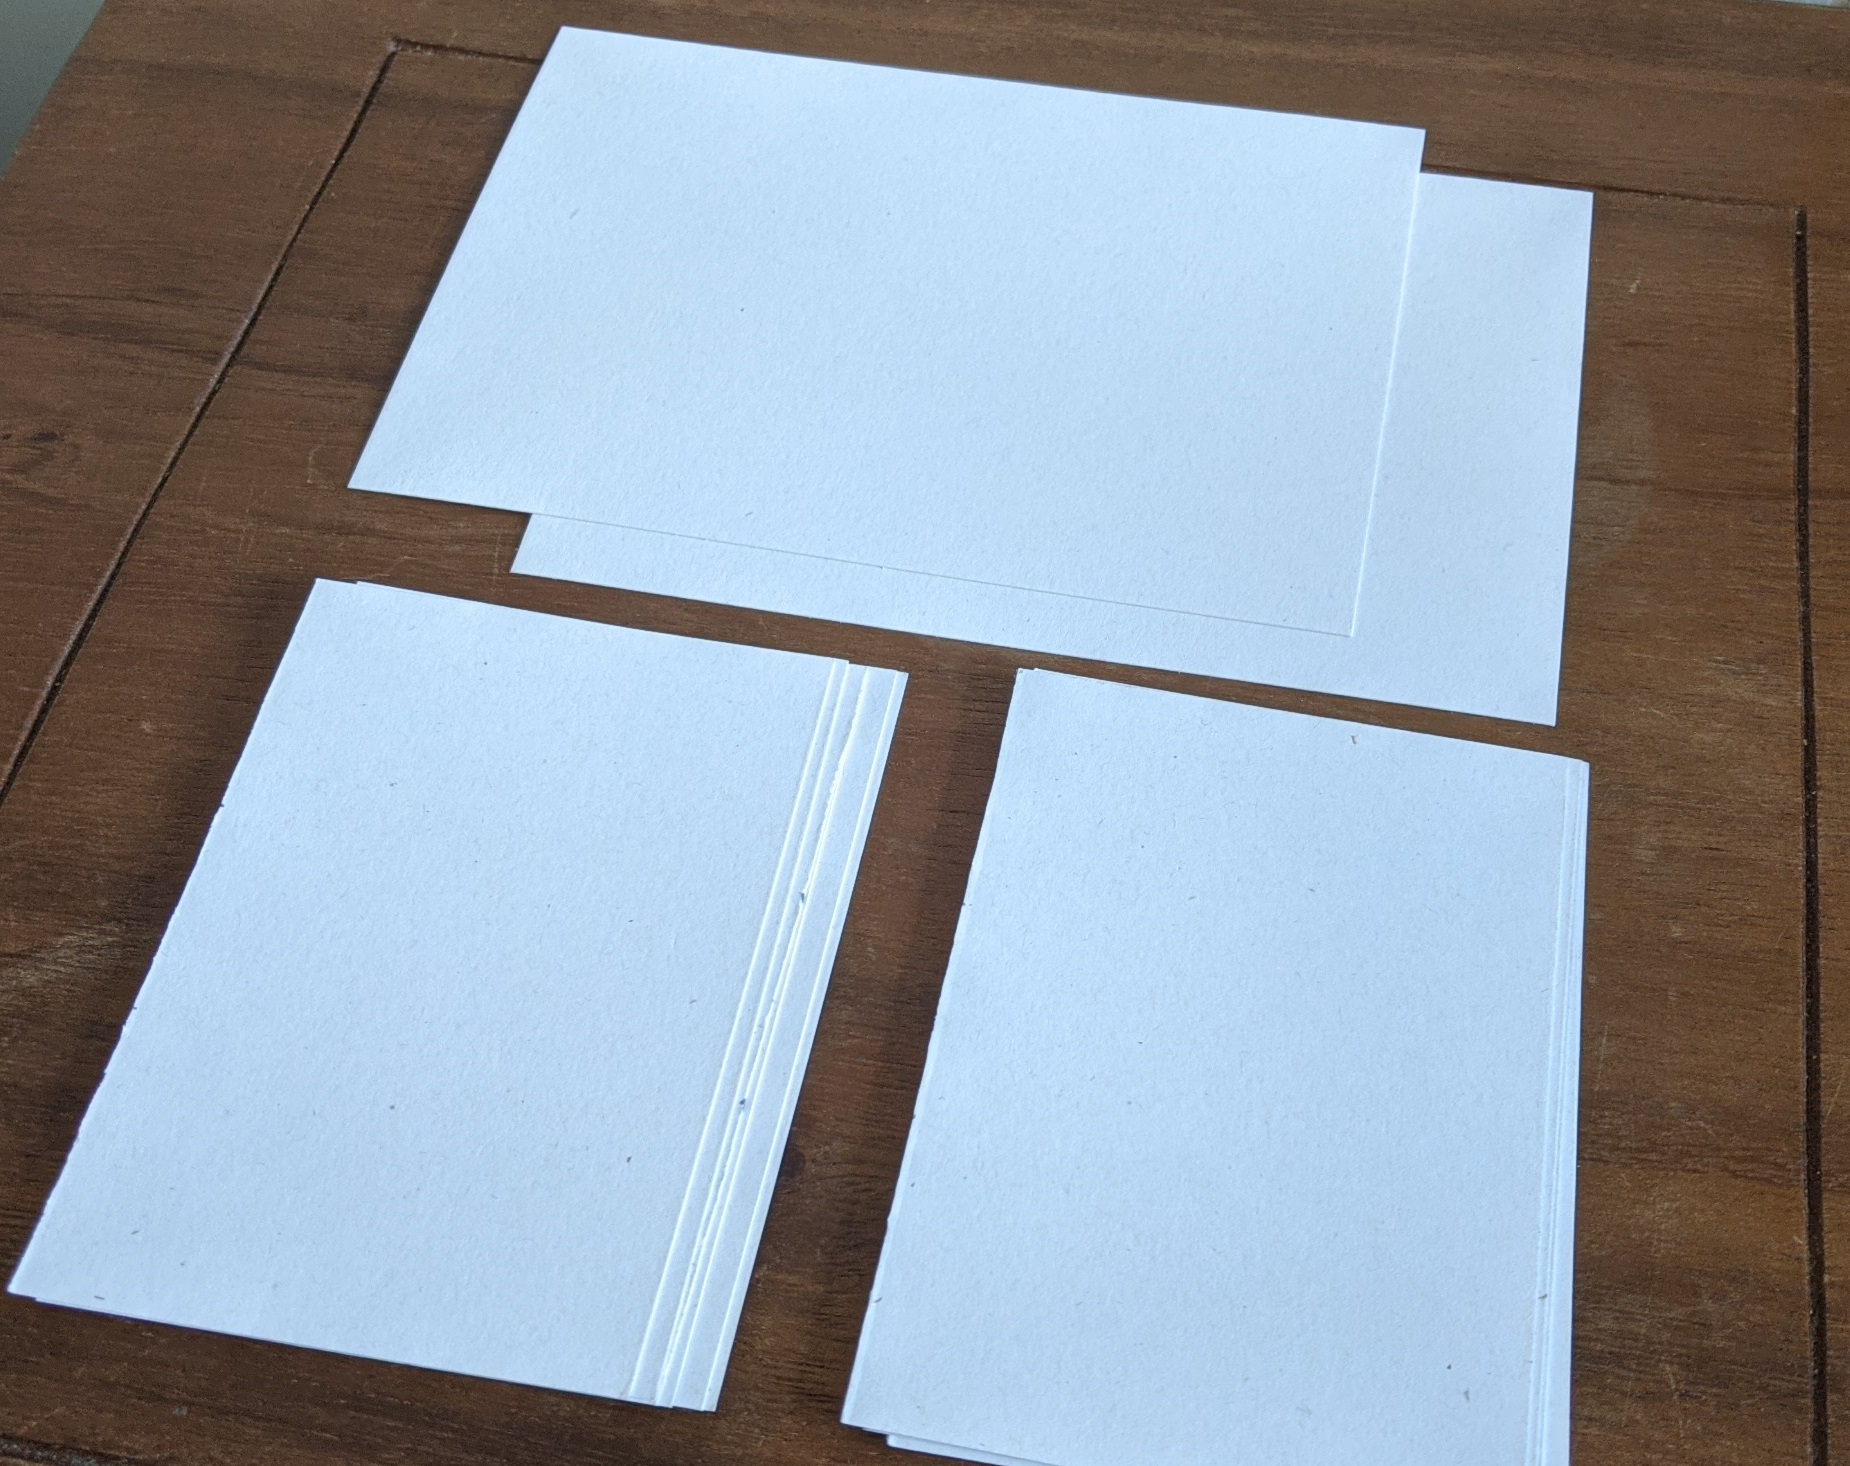 pieces of paper, cut in 2 even halves